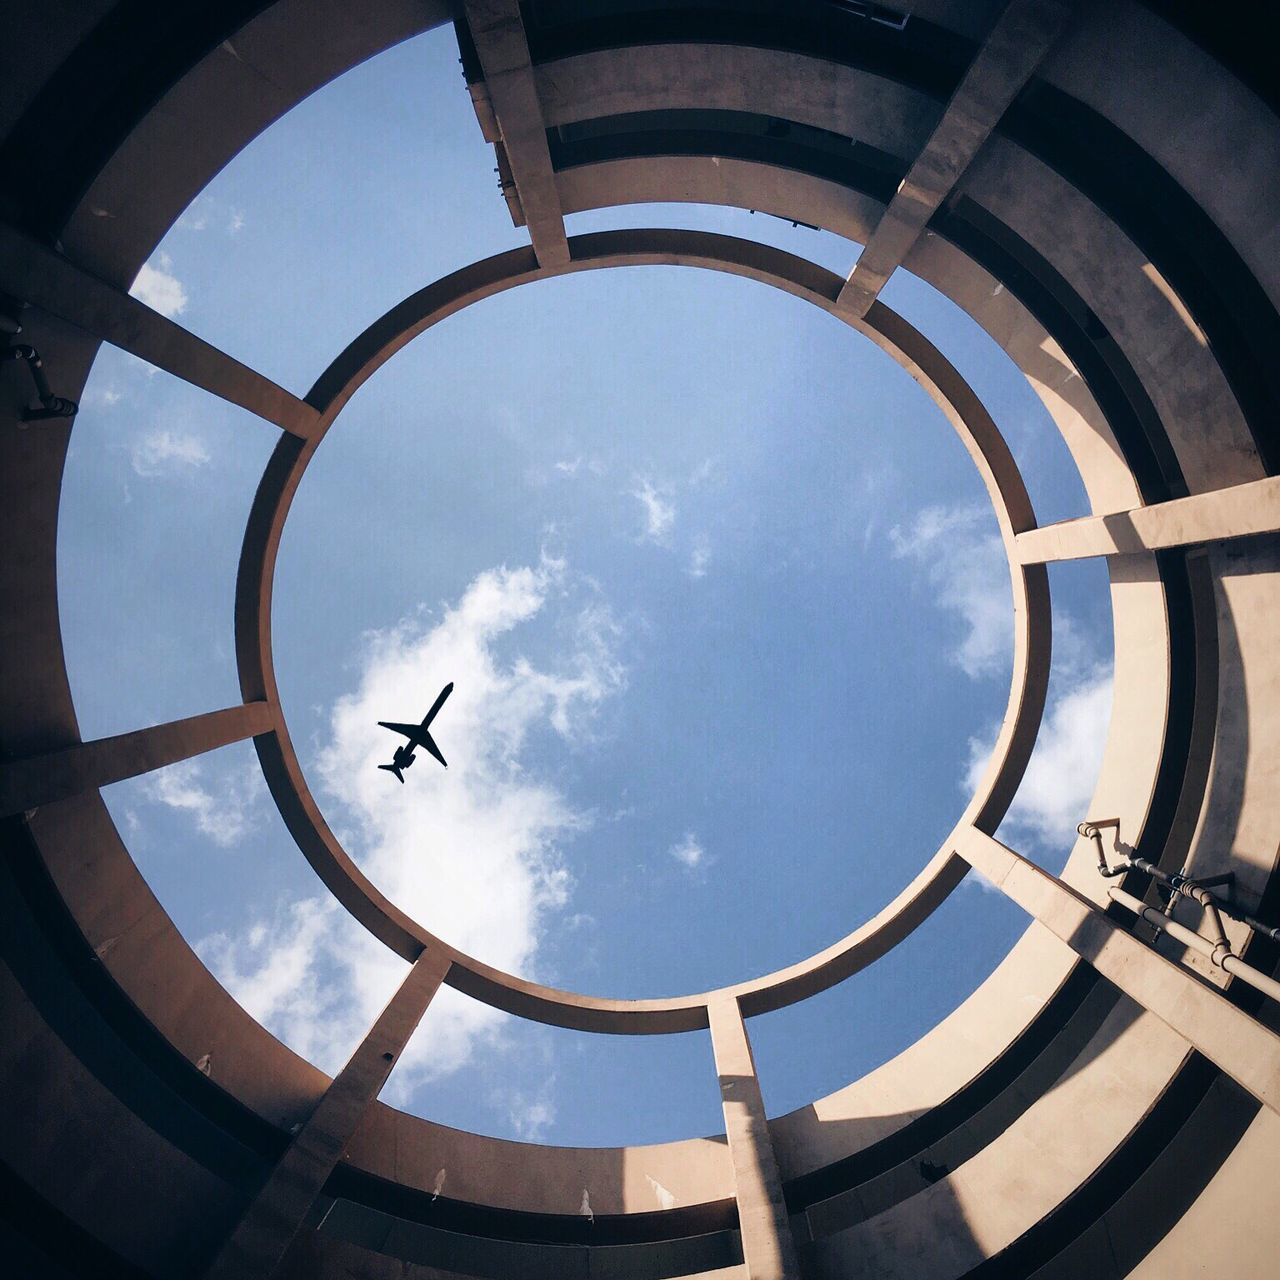 Directly below shot of silhouette airplane seen through building